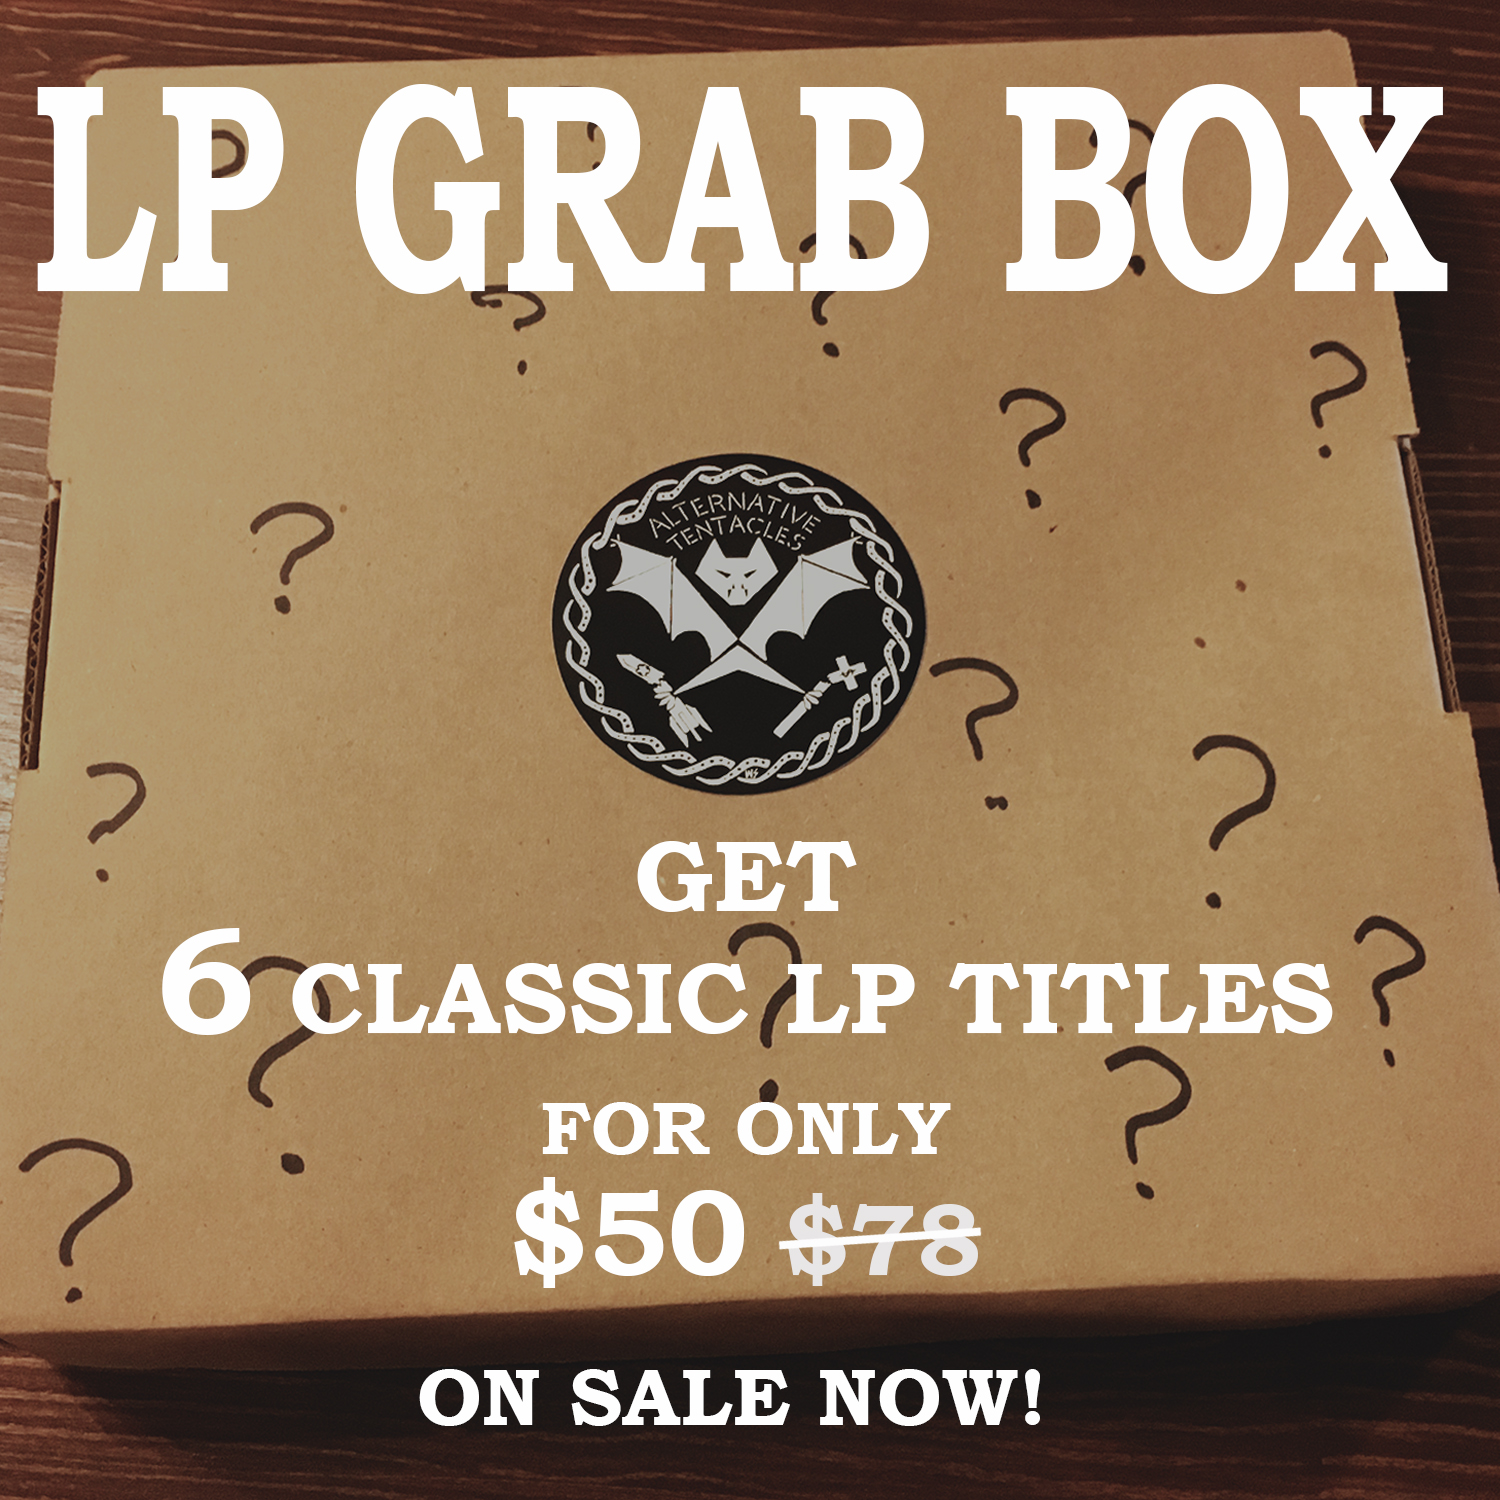 THE LP GRAB BOX SALE! – Alternative Tentacles Records